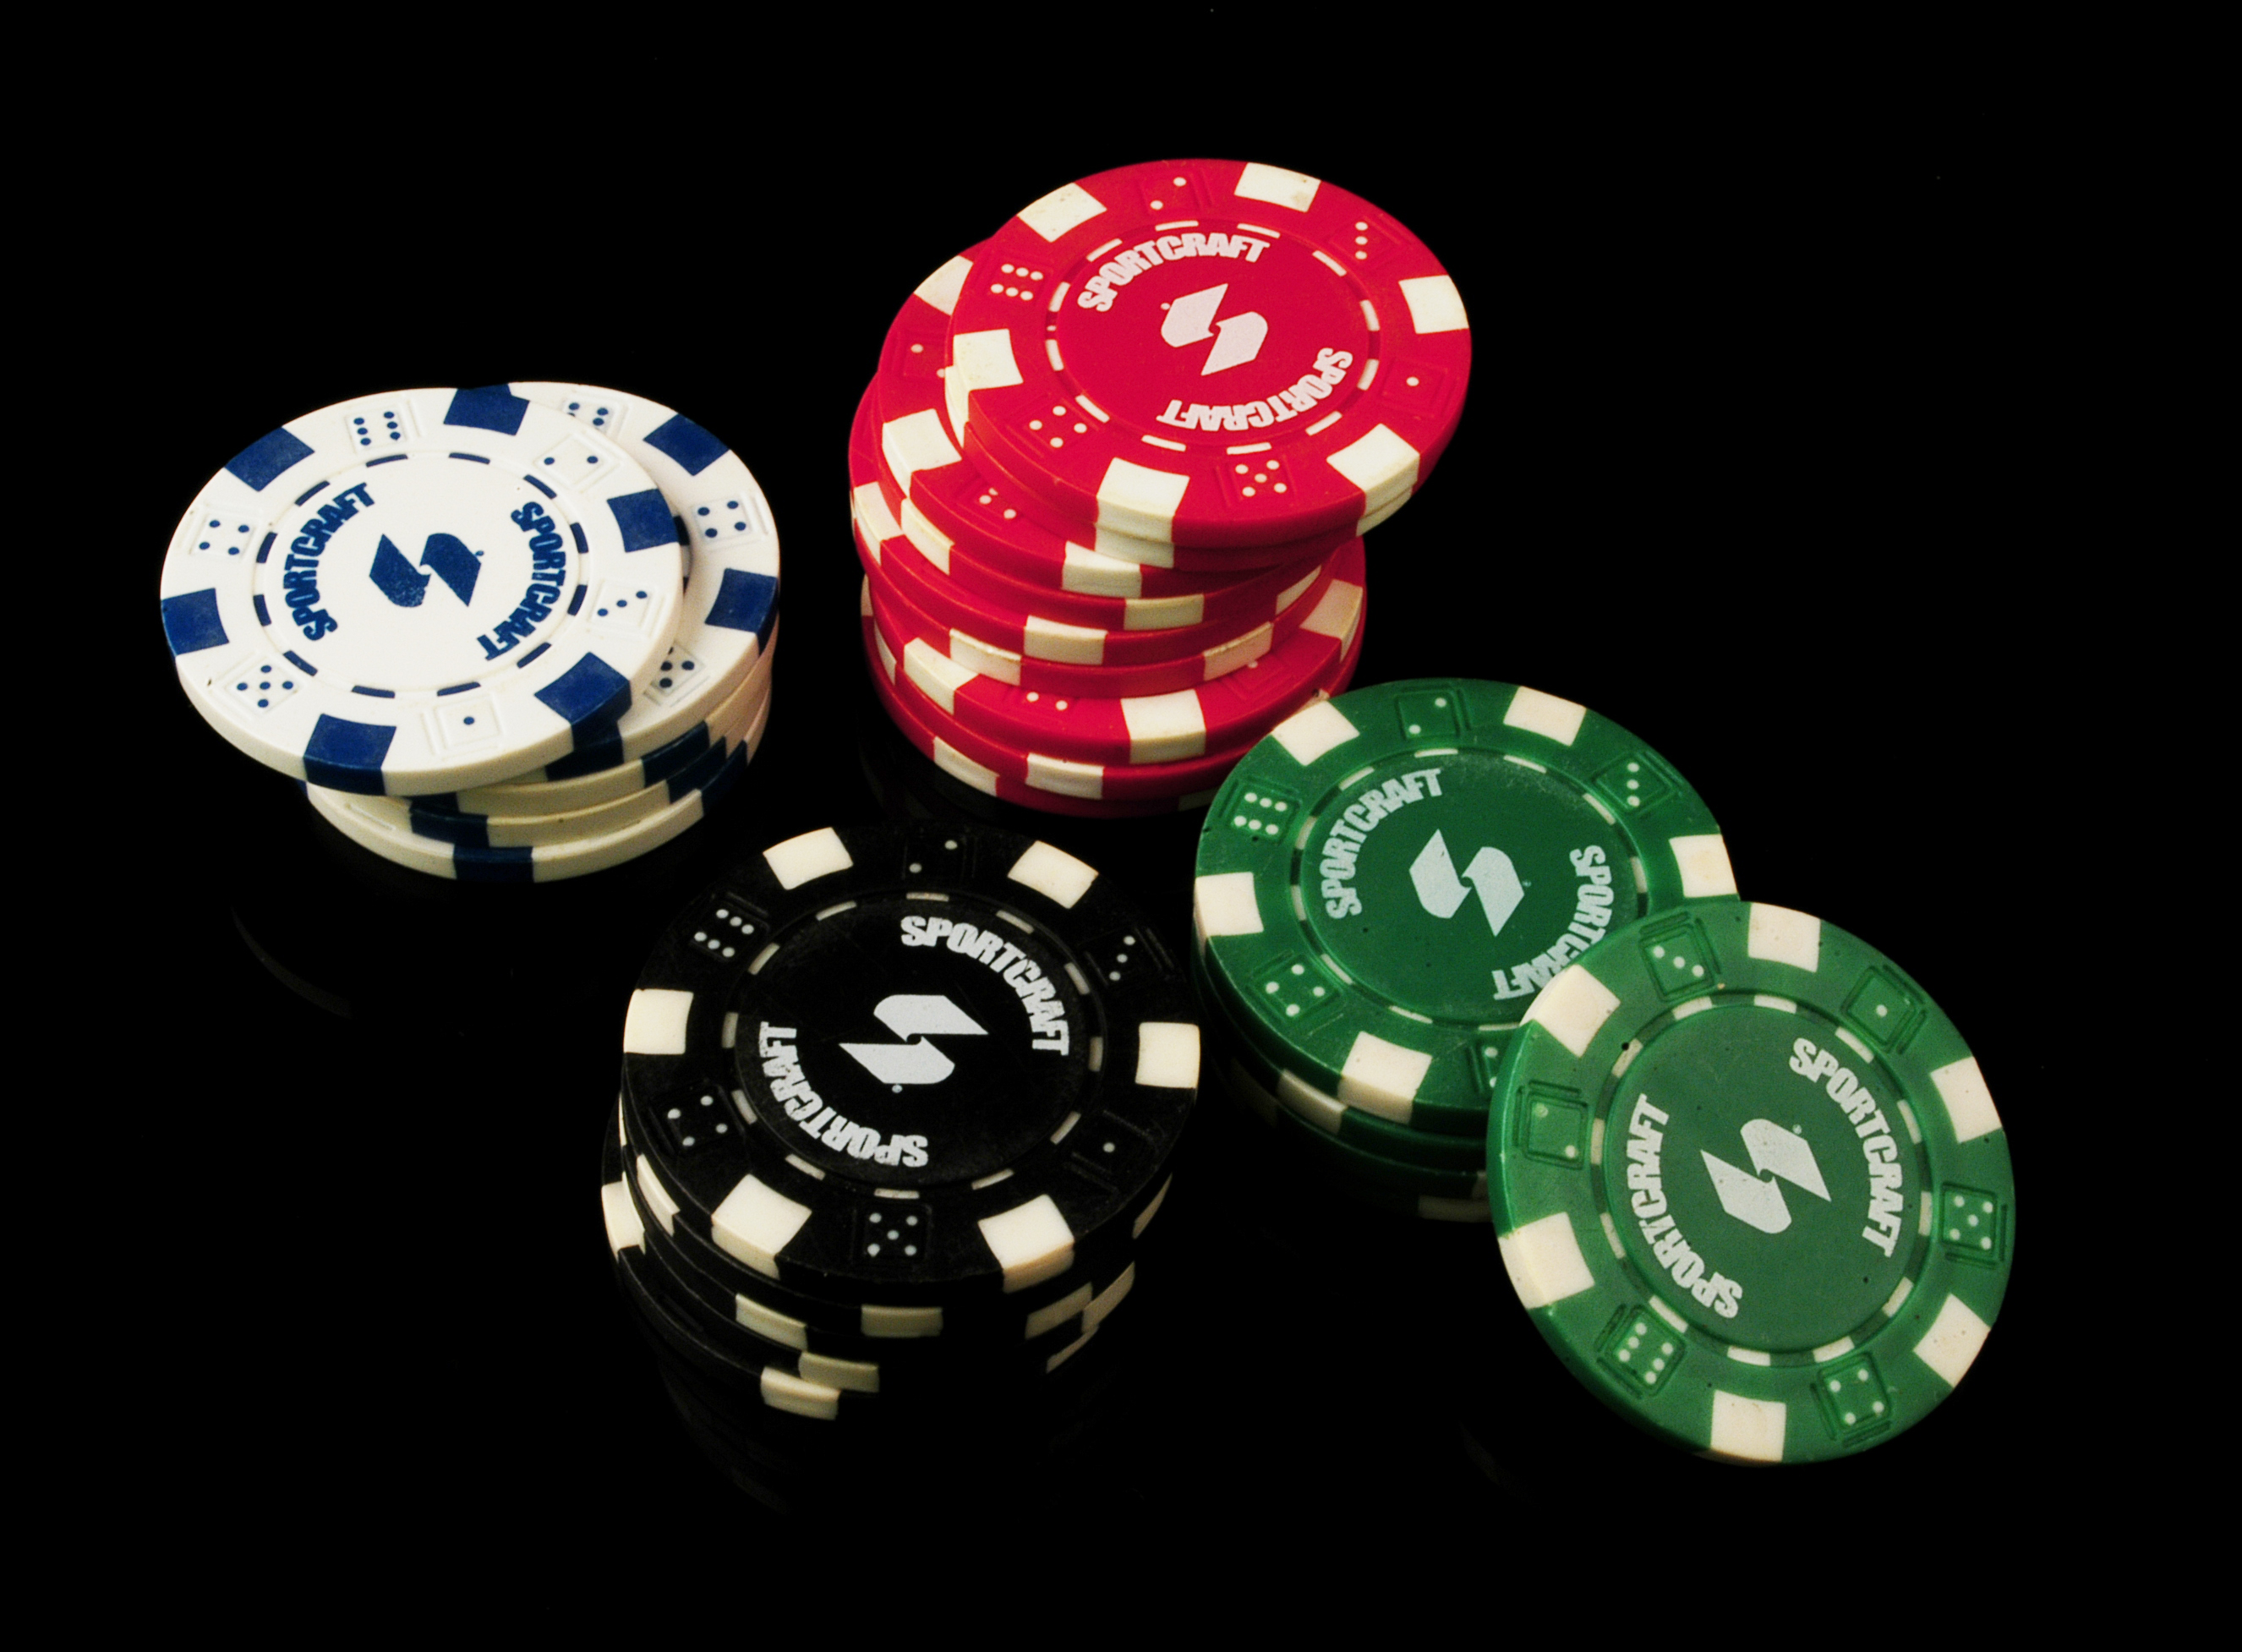 Poker Chips.jpg English: Poker Chips Date 10 February 2010 Source Own work Author Ab5602